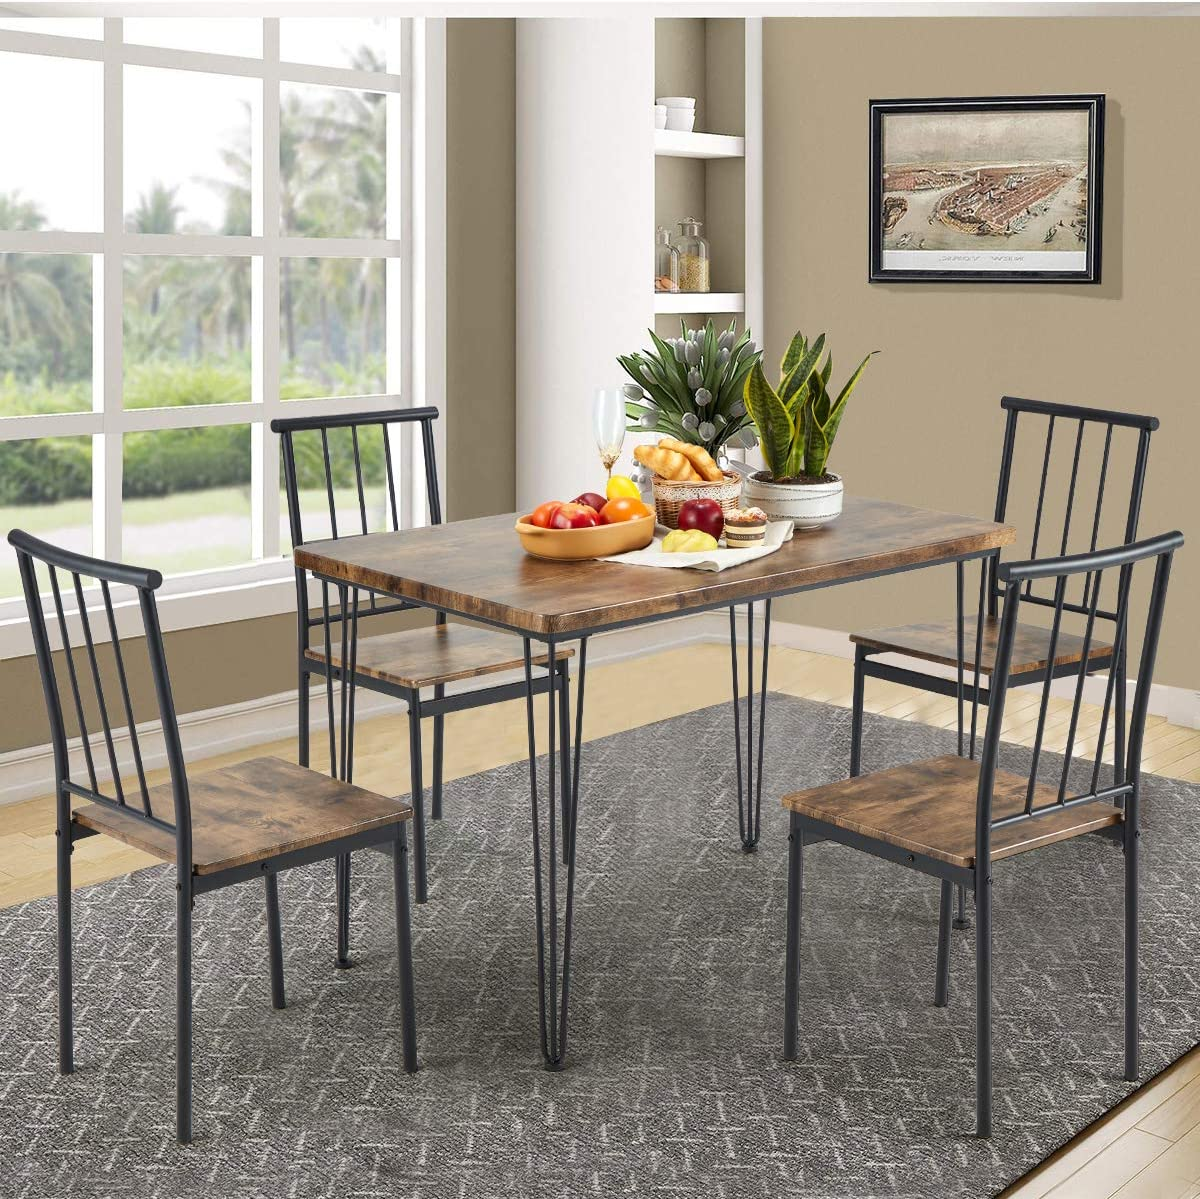 MELLCOM 9 Piece Dining Table Set with 9 Benches Modern Compact Iron Frame  MDF Board, PVC Chairs Set for Home, Bar, Kitchen 9 Person Brown